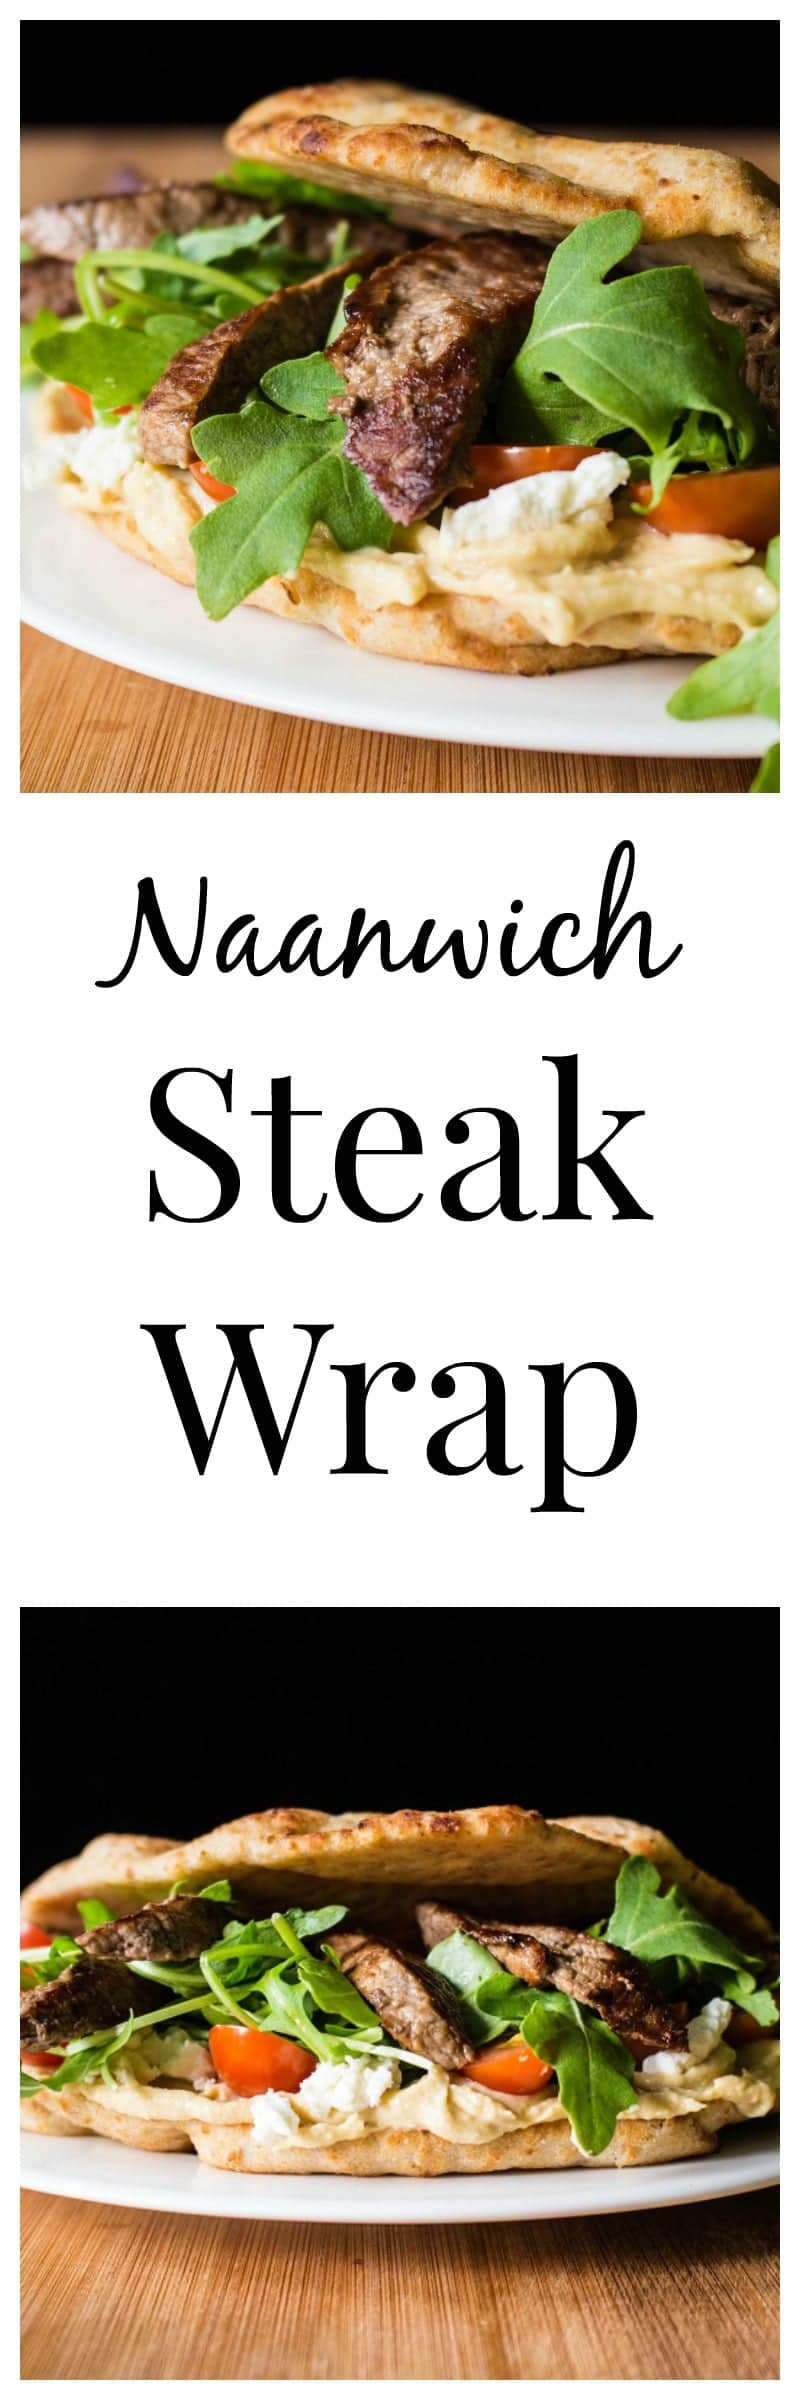 Topped with strips of beef, hummus, grape tomatoes, arugula, and goat cheese, this steak wrap on naan bread makes a satisfying lunch or dinner!